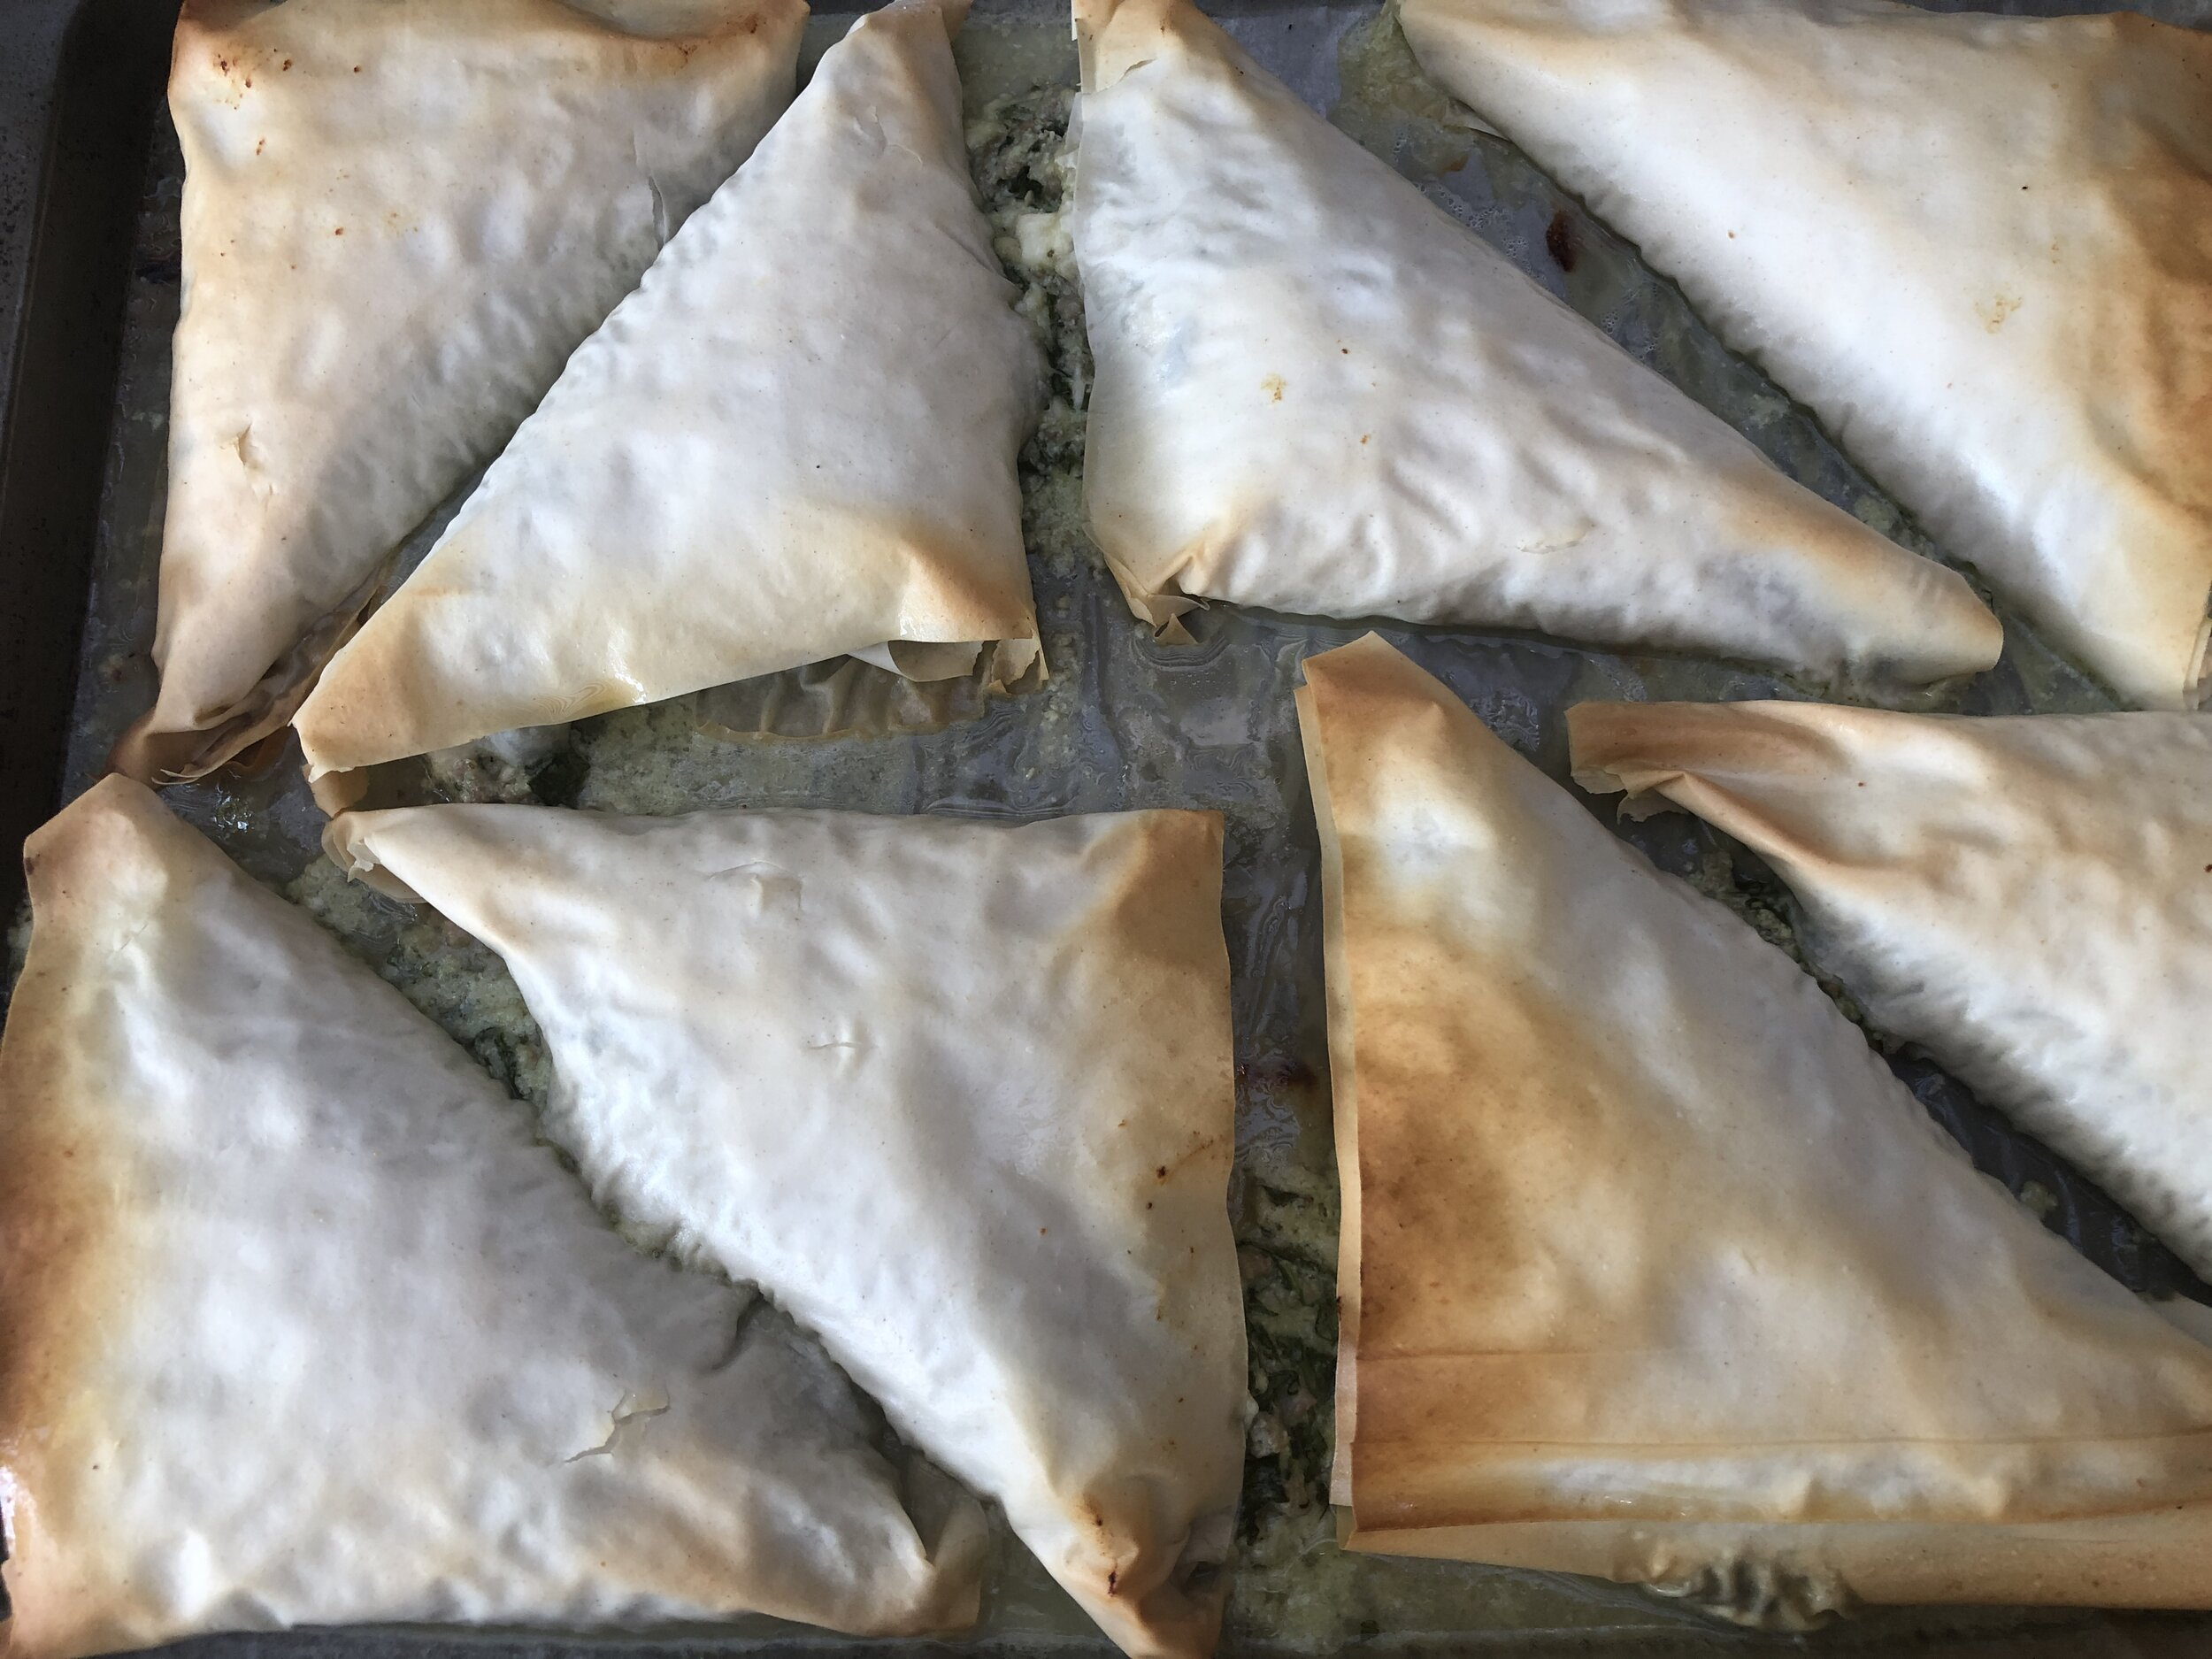 Greek meat pies out of the oven.